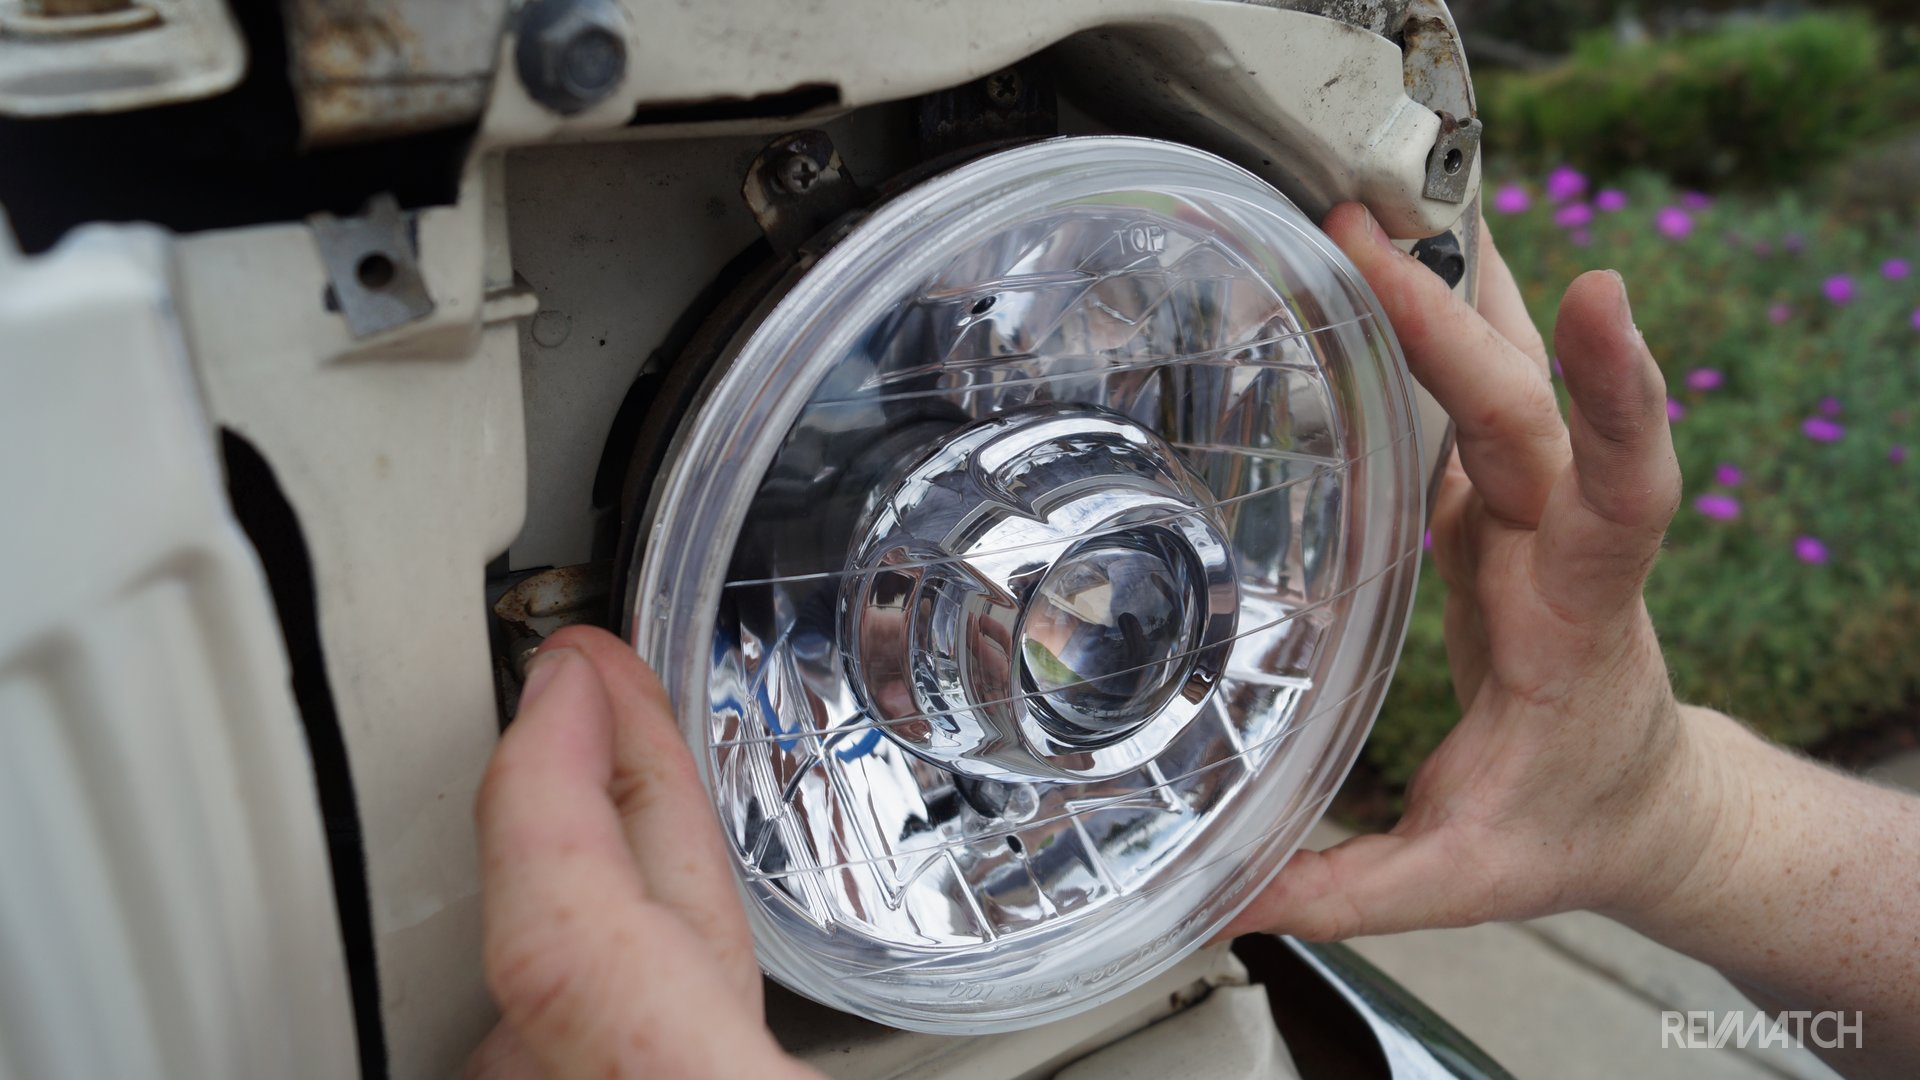 Classic Meets Modern Dapper Lighting 7 V1 Installation 911 H4 Headlight Wiring Diagram Get Free Image About Theres Nothing Better Than Upgrading The Look And Feel Of Your Car With Projector Kit You Will Add An Updated